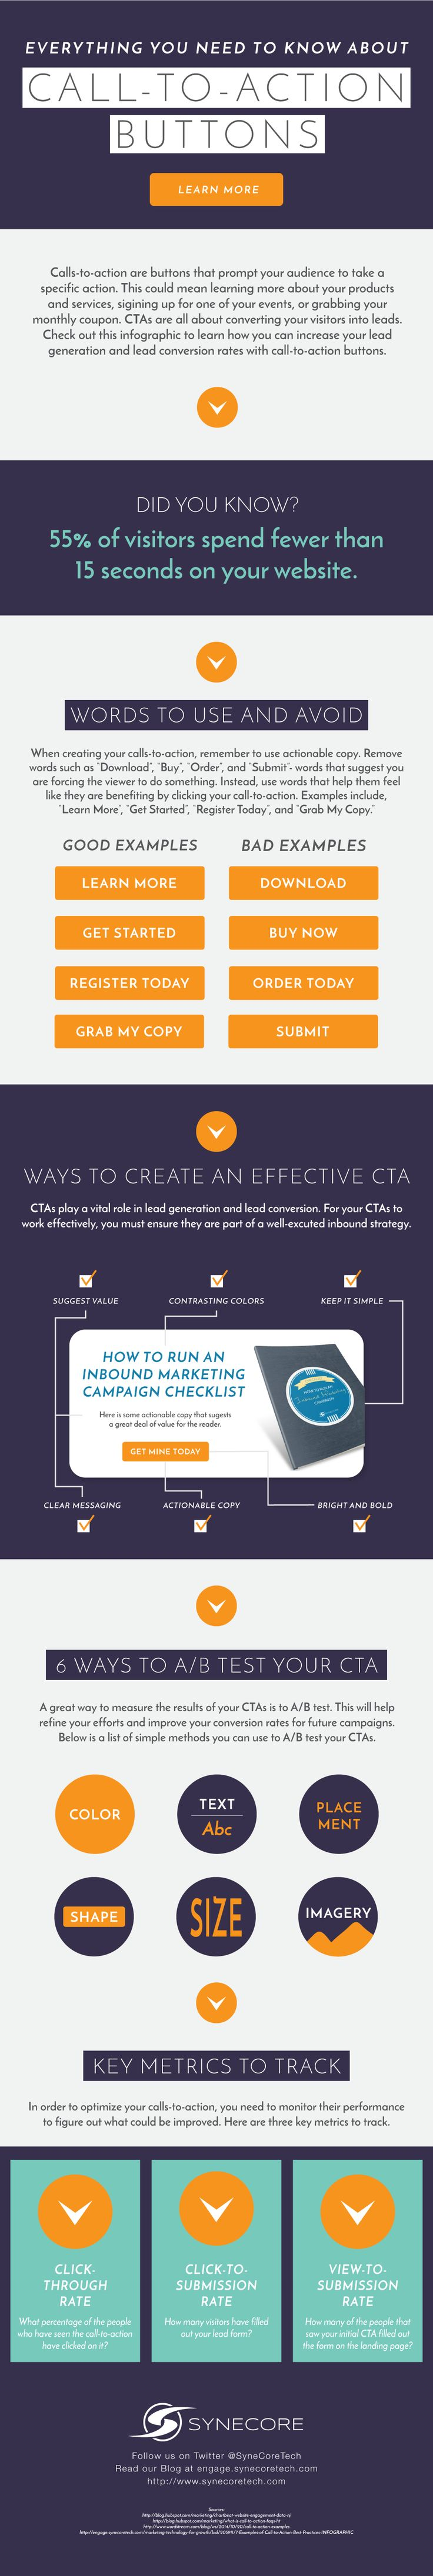 Everything You Need to Know About Call-to-Action Buttons #Infographic #Marketing